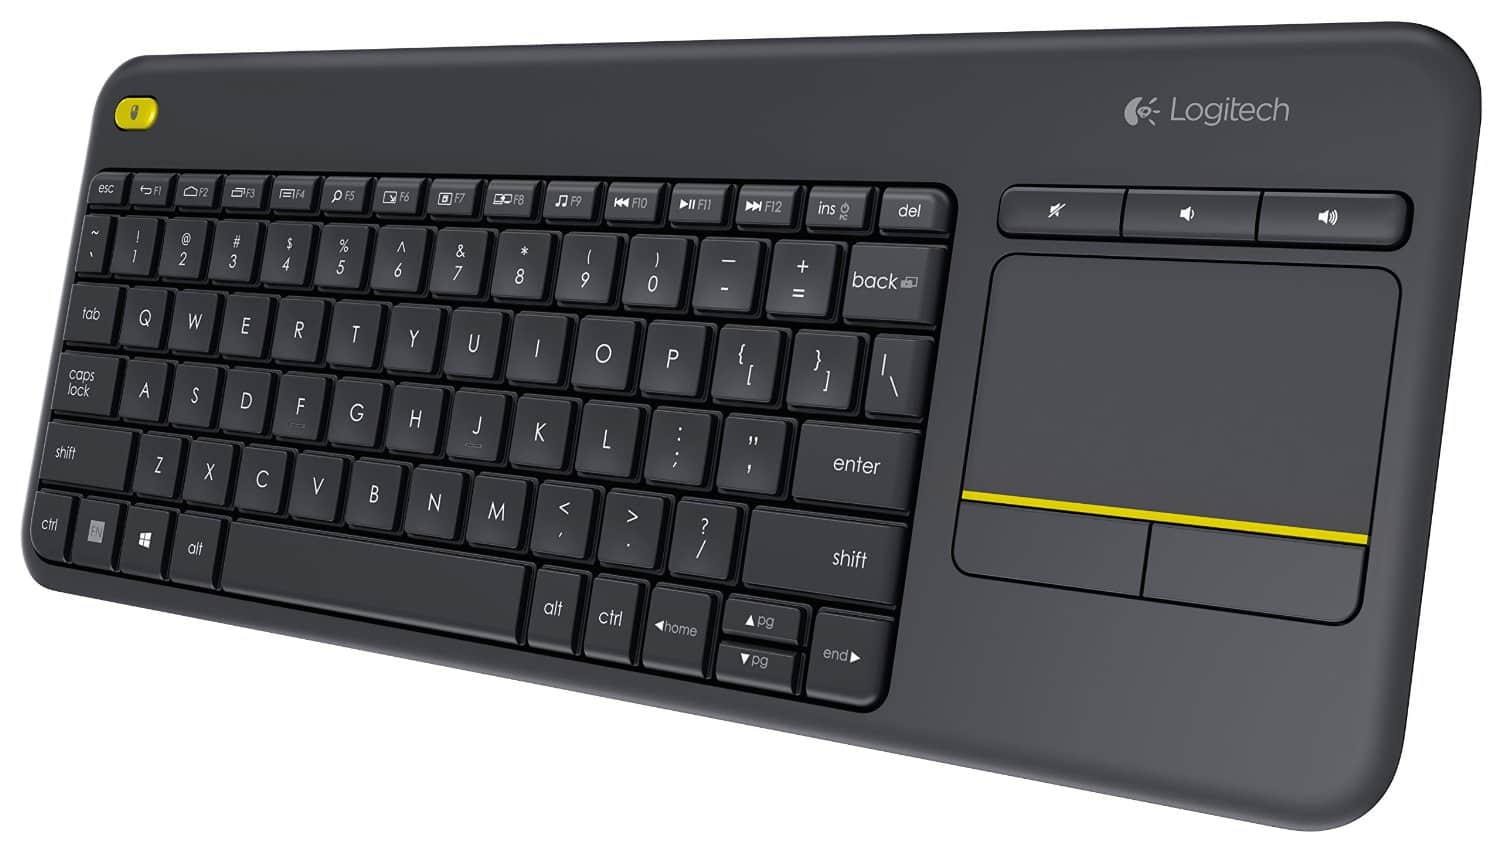 Logitech Accessories: M570 Trackball $20, MK270 Keyboard/Mouse  $12.50 & Much More